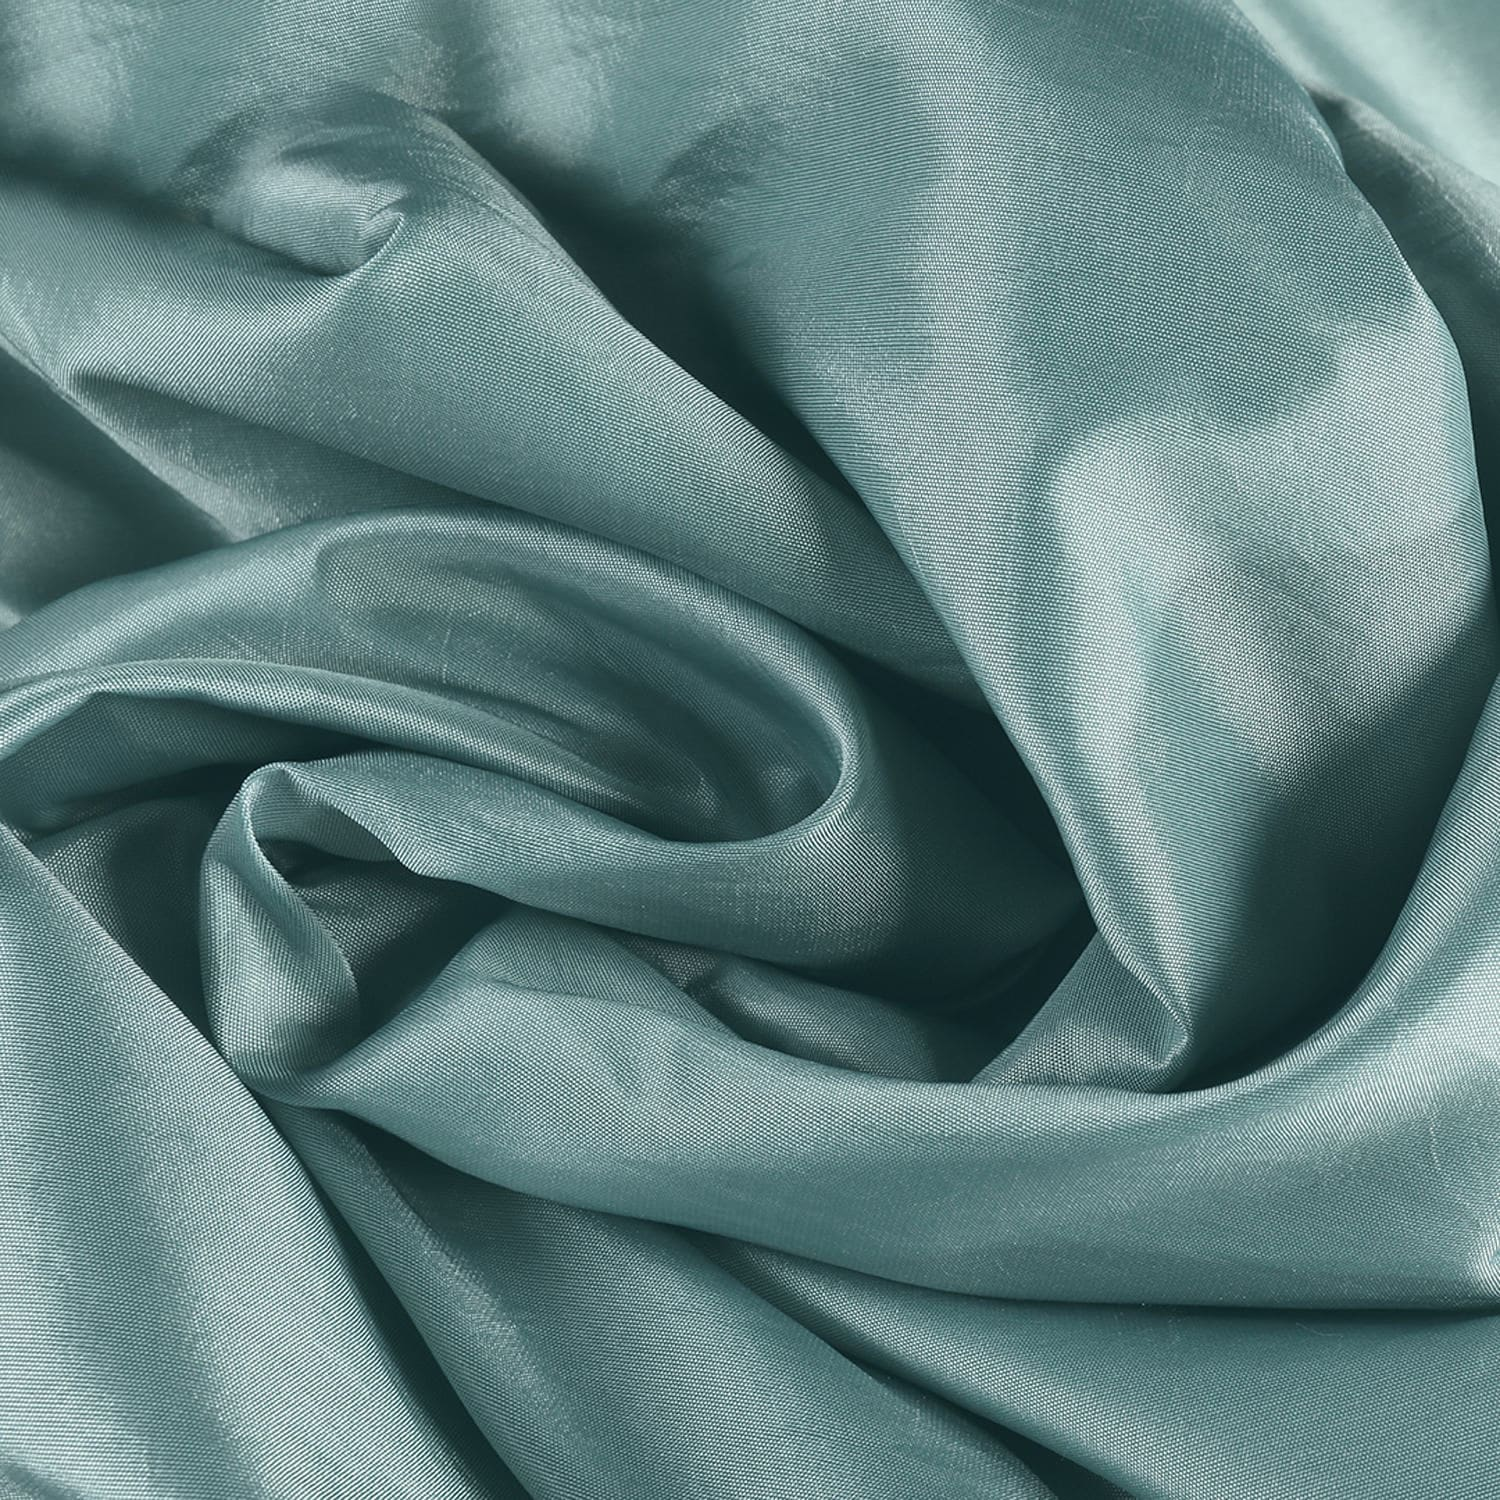 65196c0a1ec Shop Exclusive Fabrics Solid Faux Silk Taffeta Robin s Egg Curtain Panel -  On Sale - Free Shipping Today - Overstock - 5624146